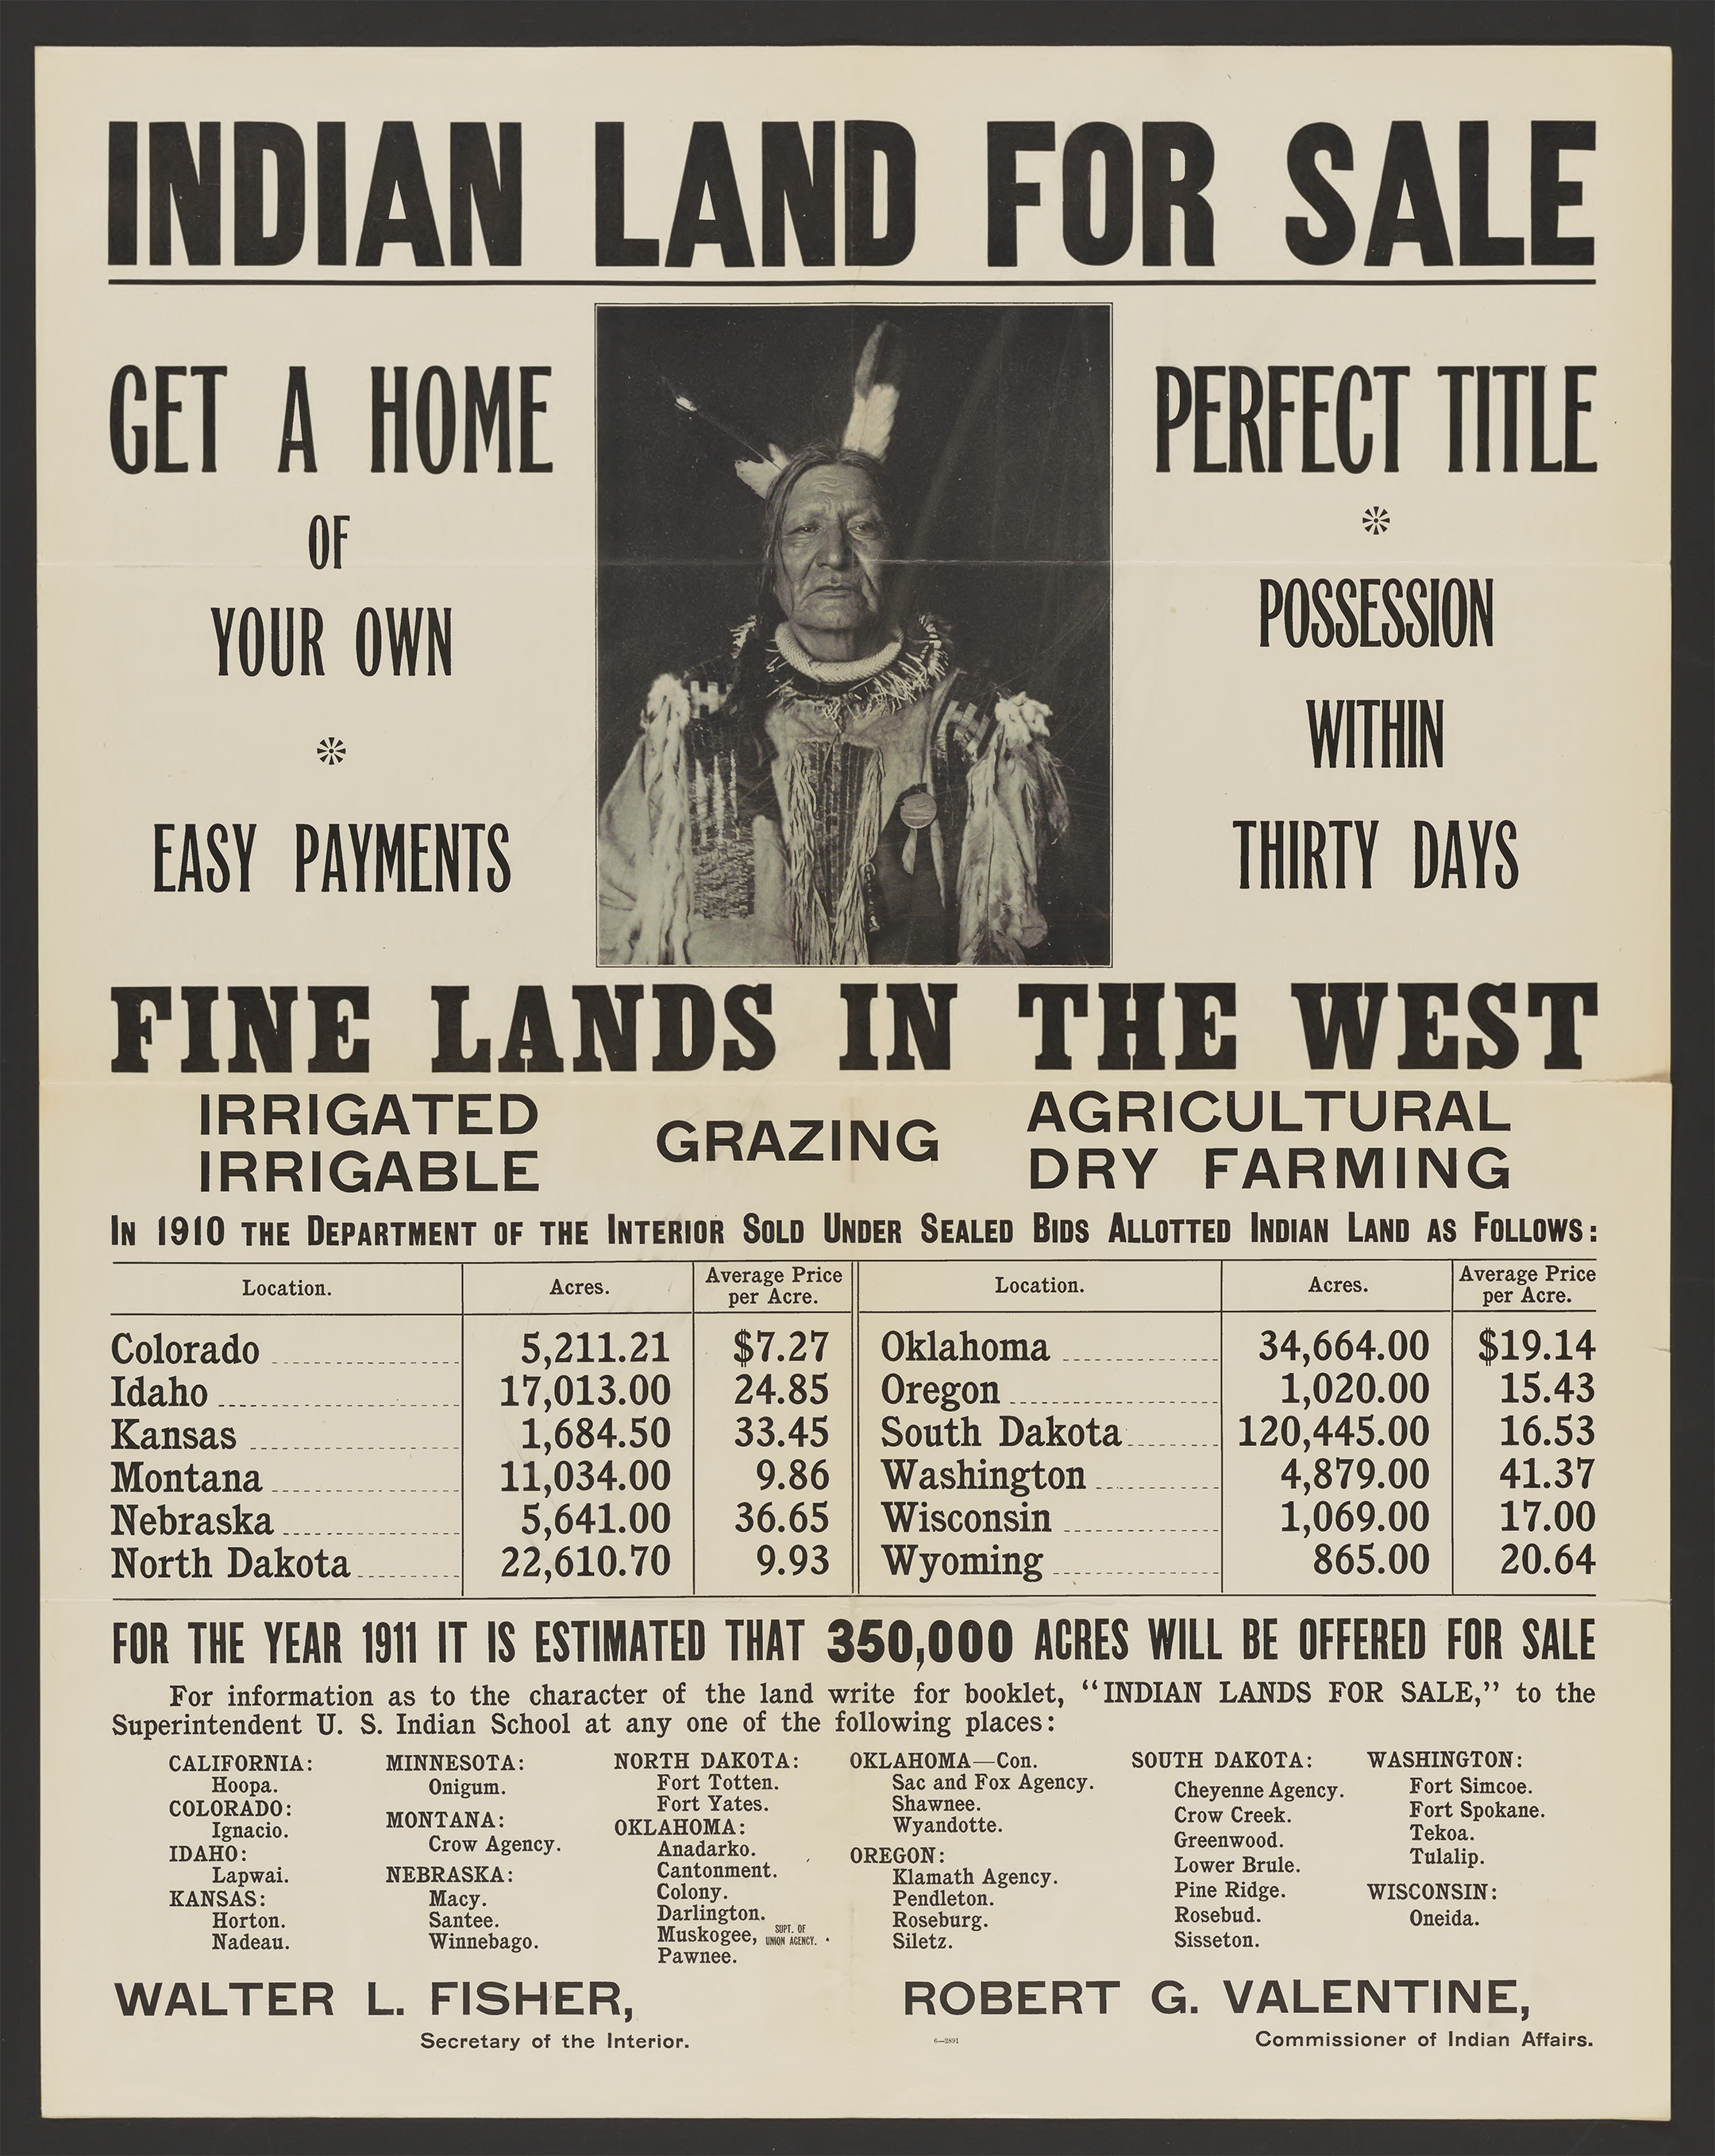 A black and white flyer advertising Indian land for sale